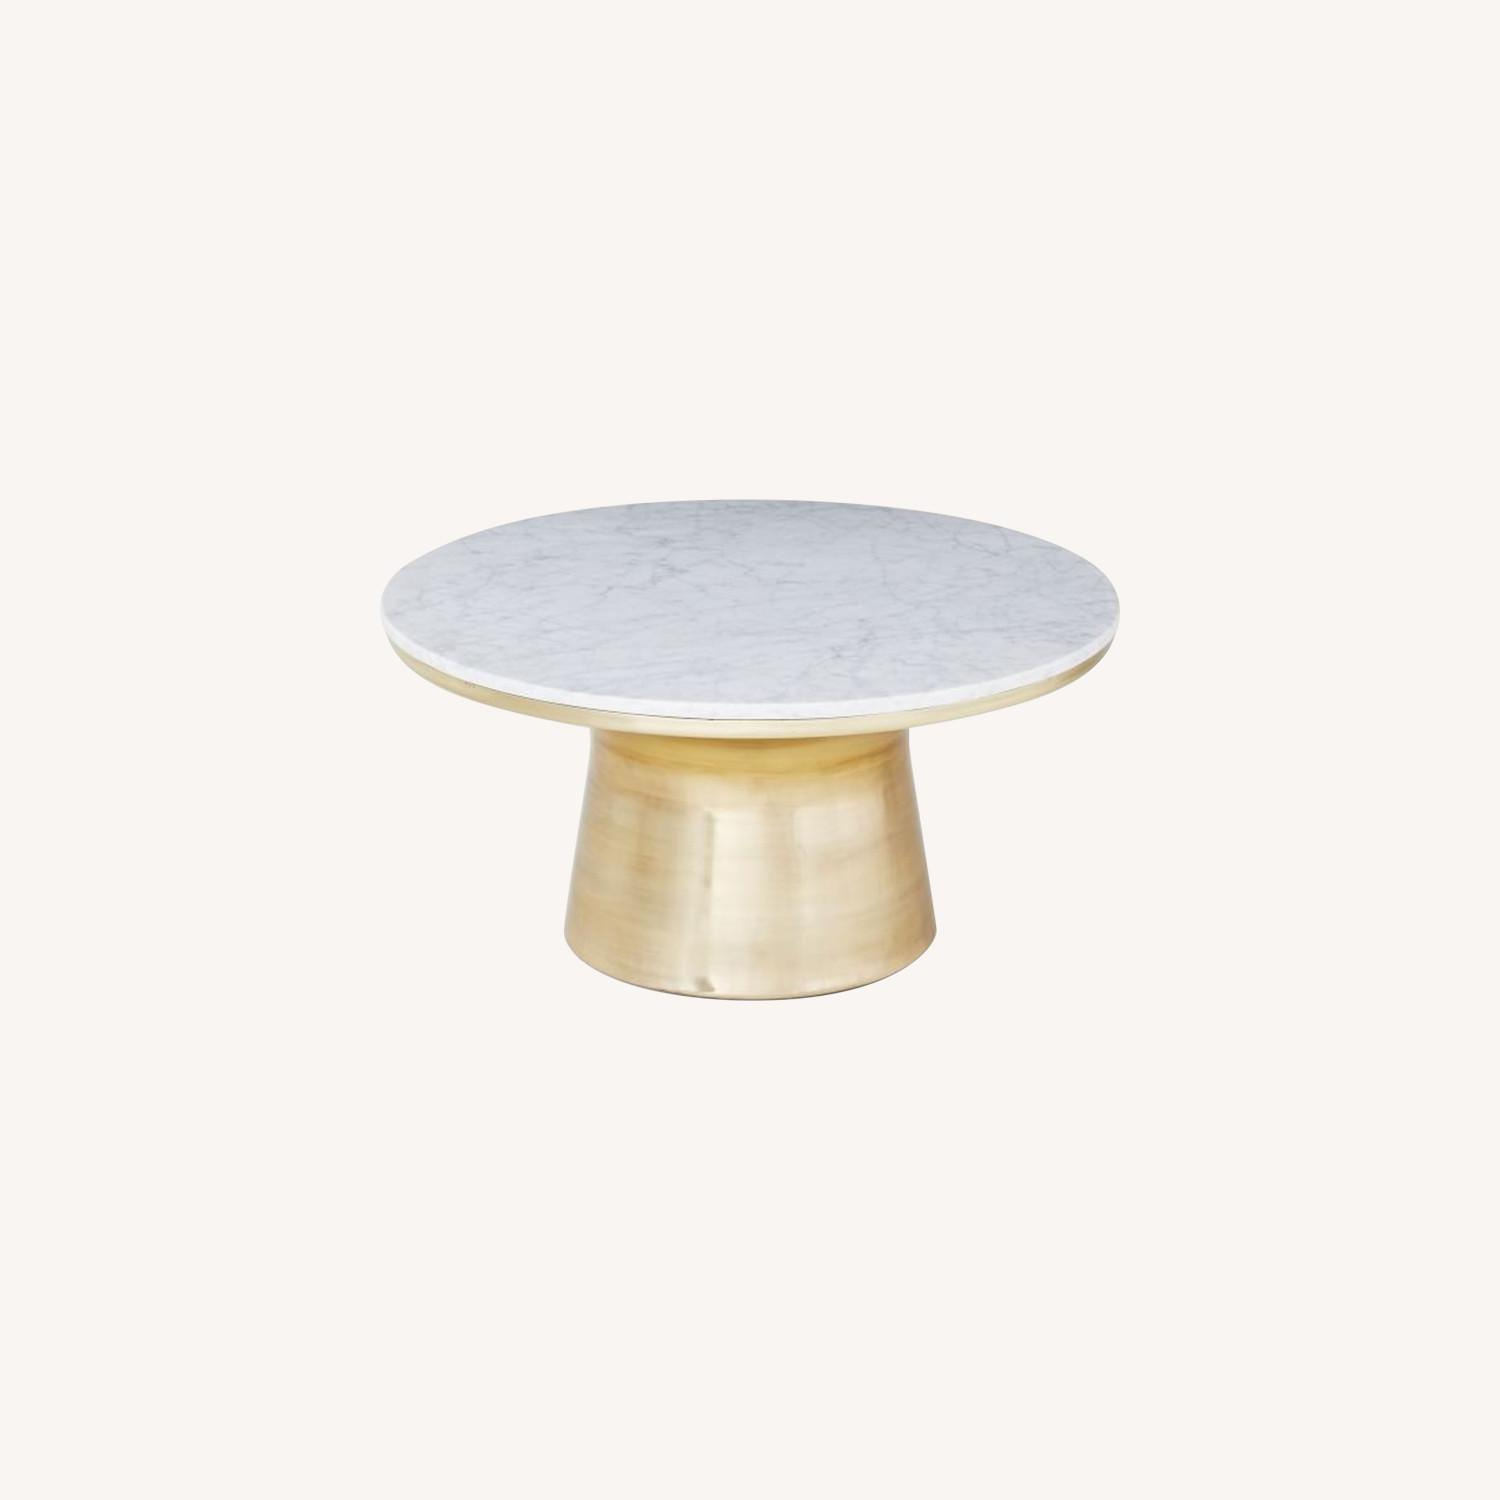 West Elm Marble Topped Pedestal Coffee Table - image-0